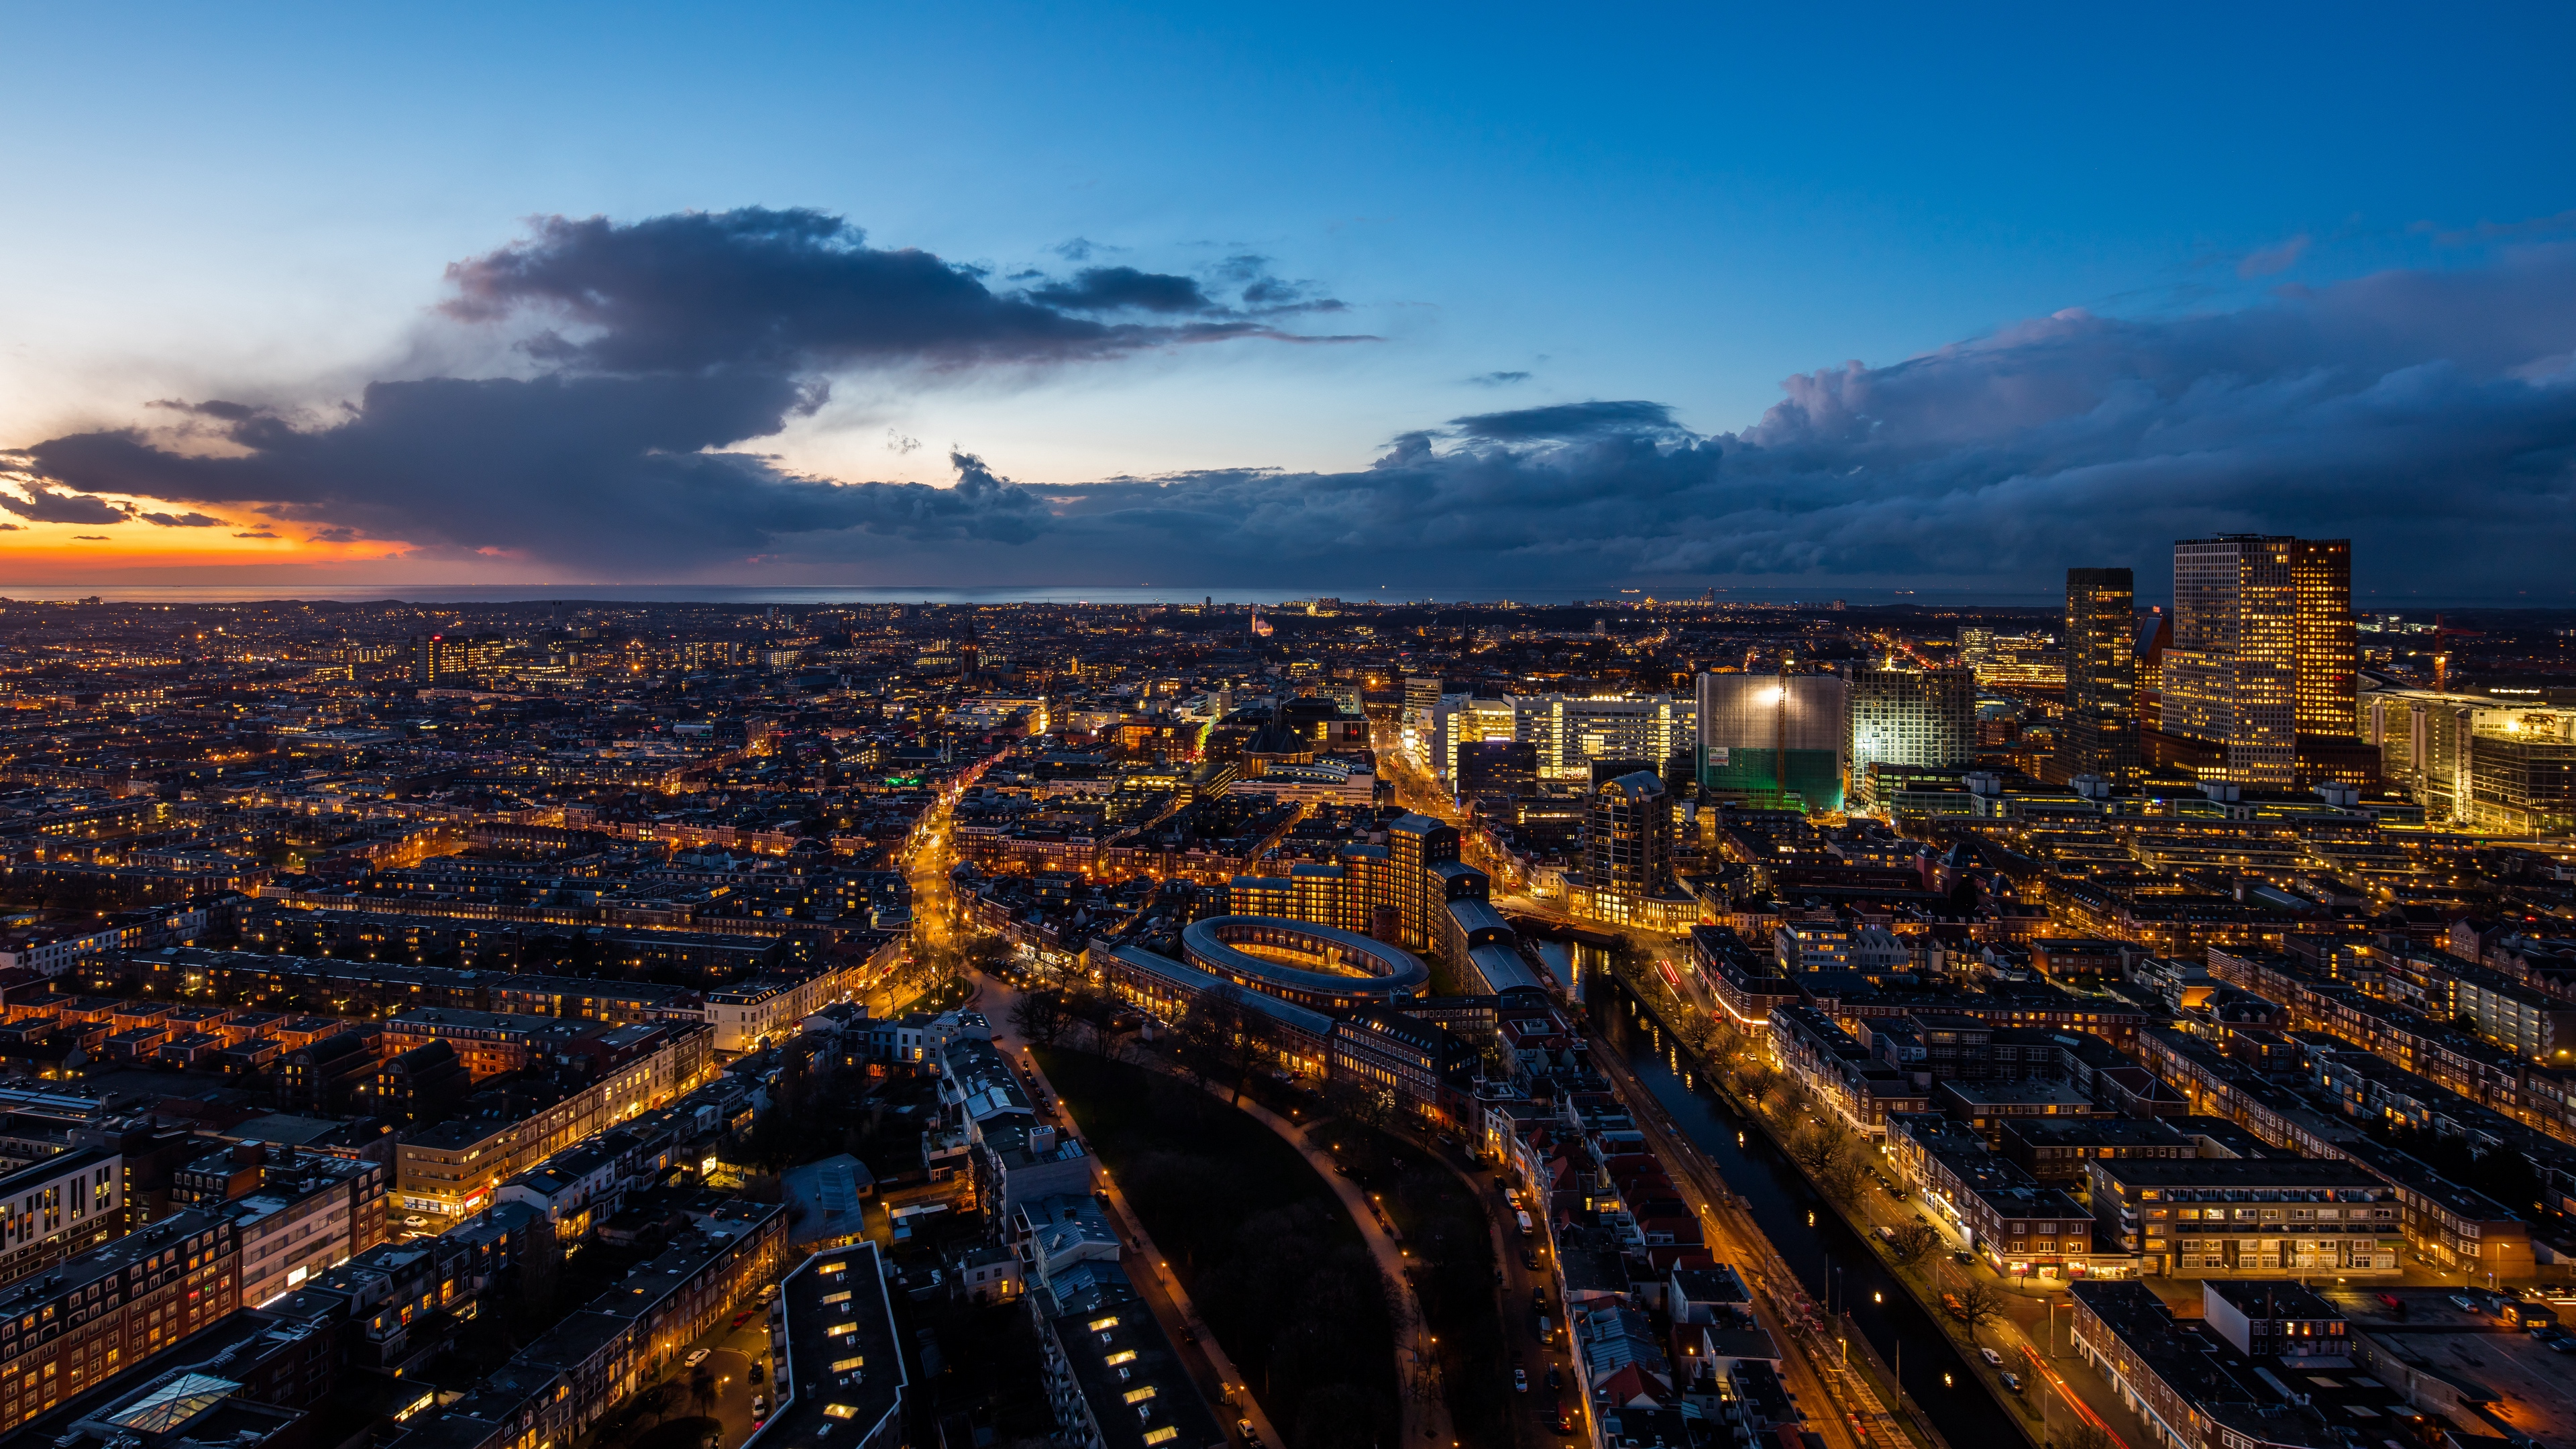 the hague netherlands night city top view 4k 1538068773 - the hague, netherlands, night city, top view 4k - the hague, night city, Netherlands